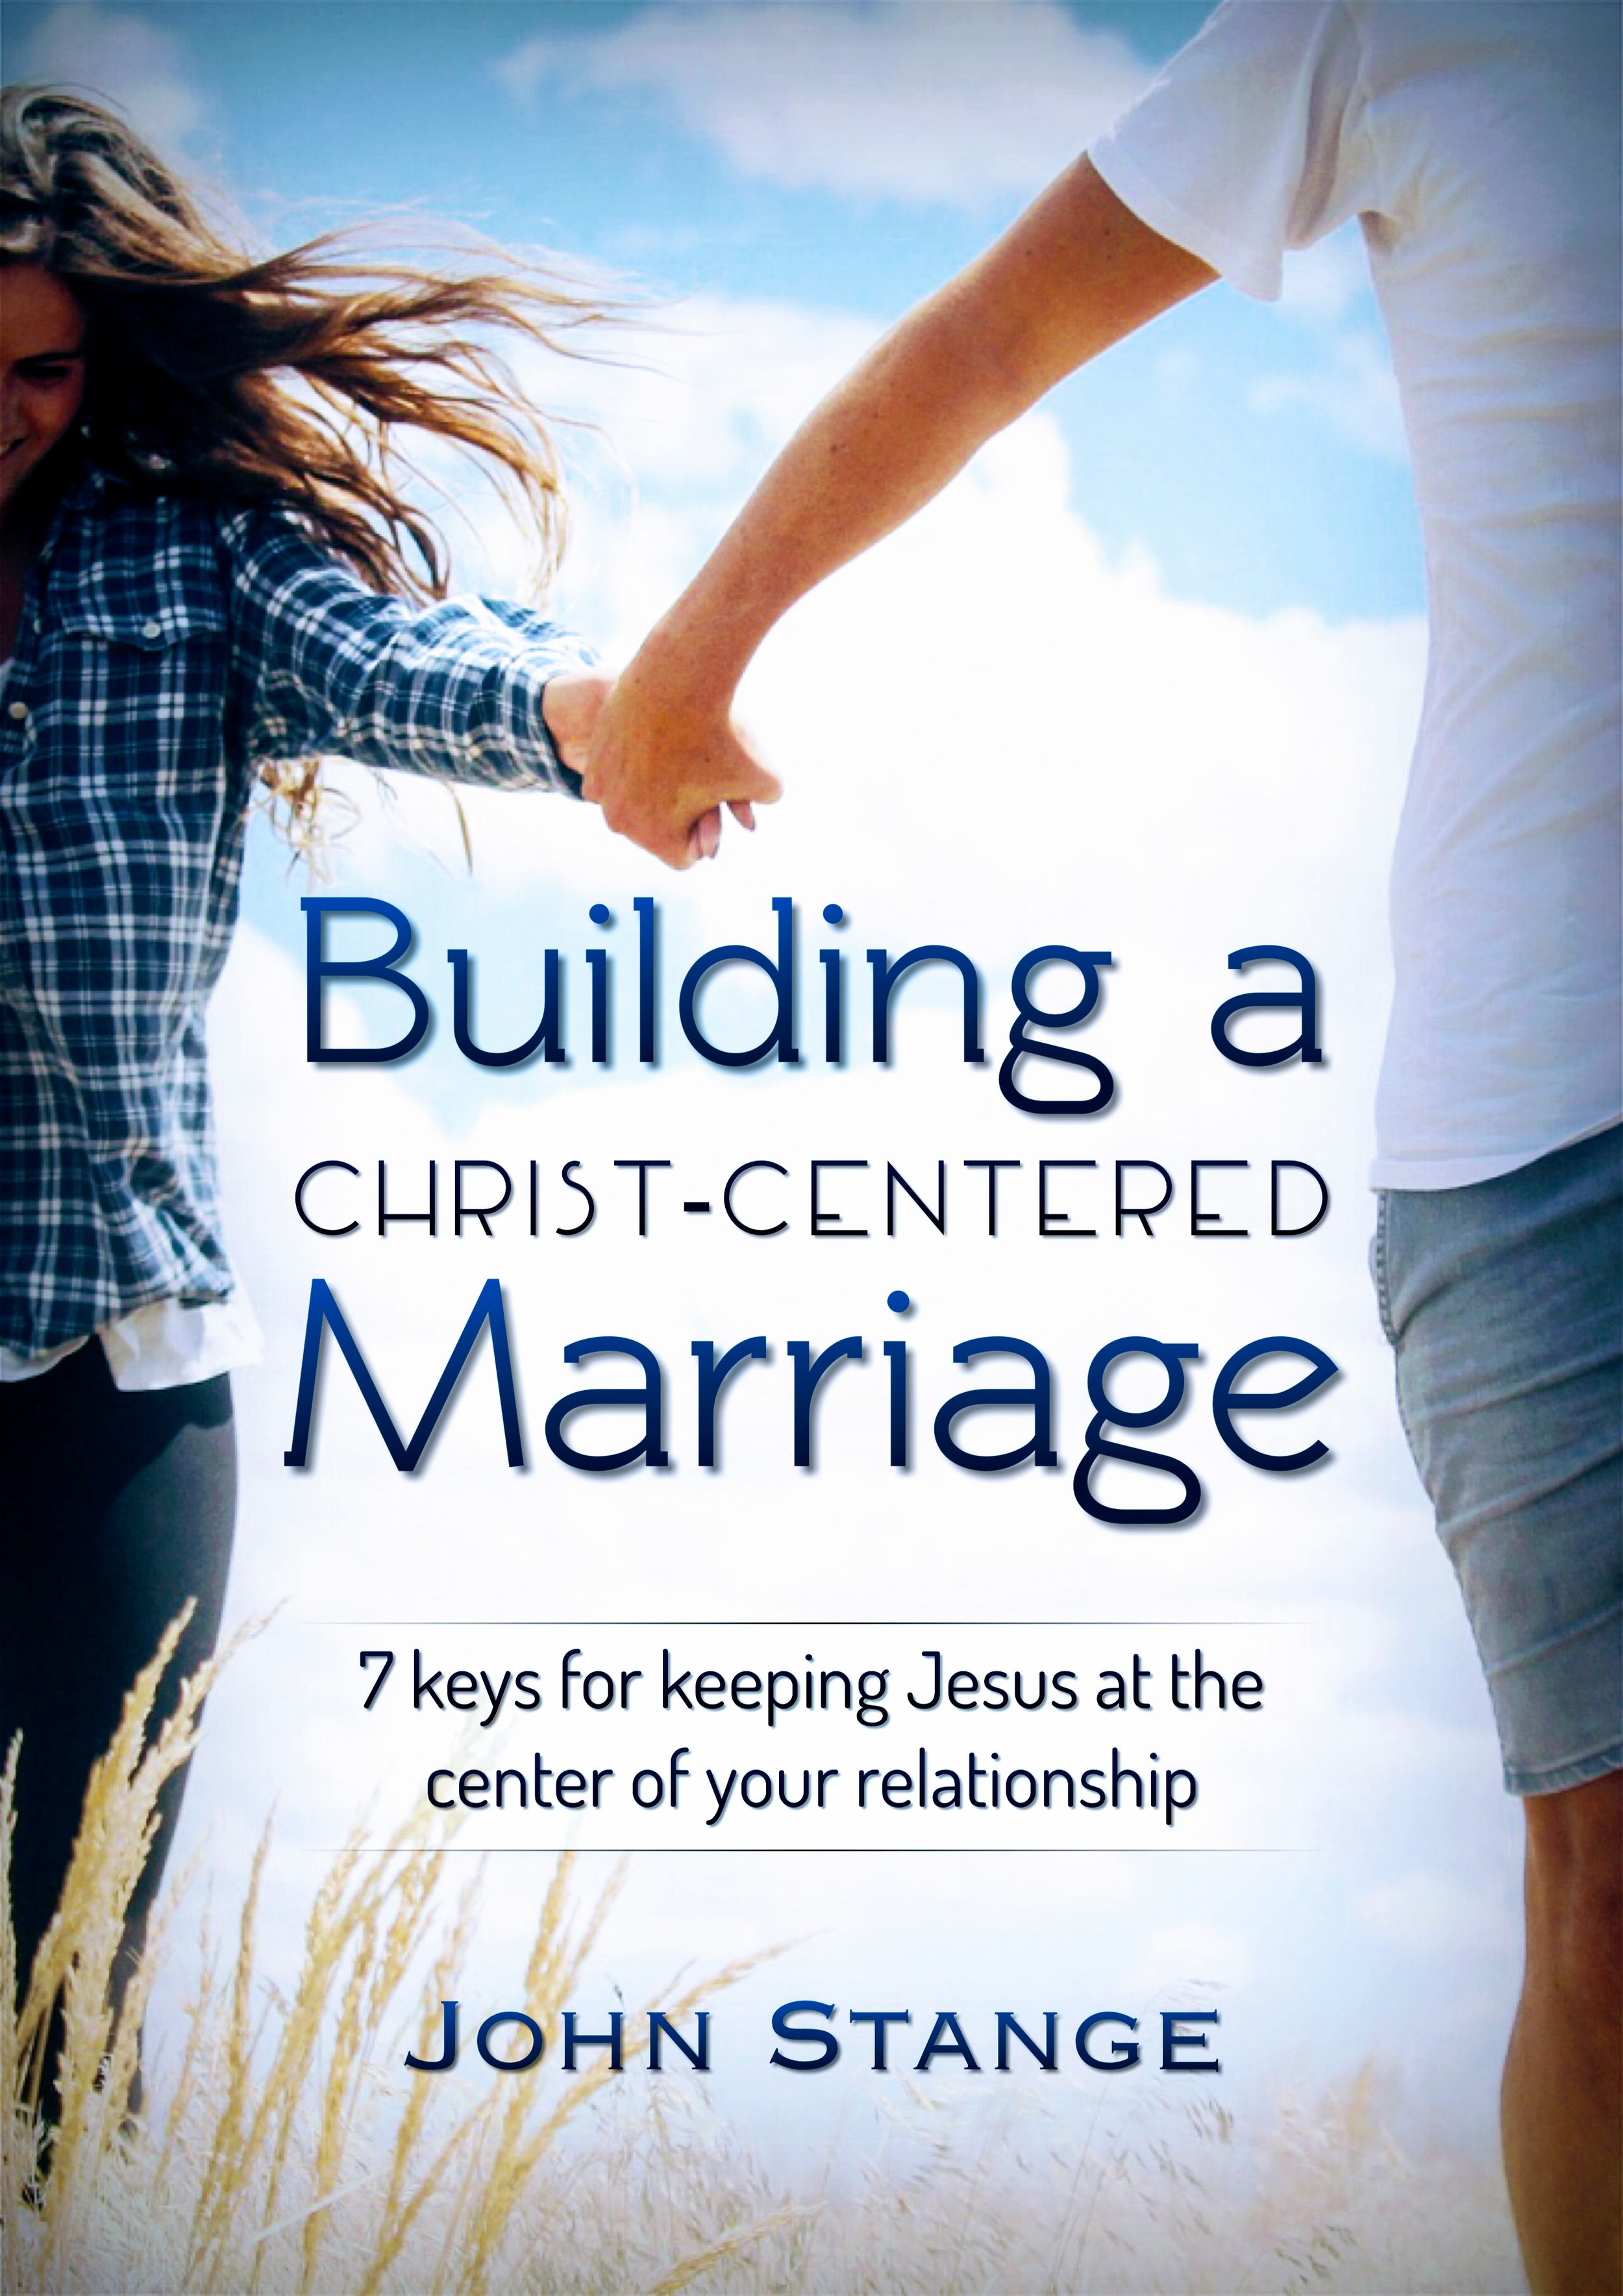 Building a Christ Centered Marriage.JPG